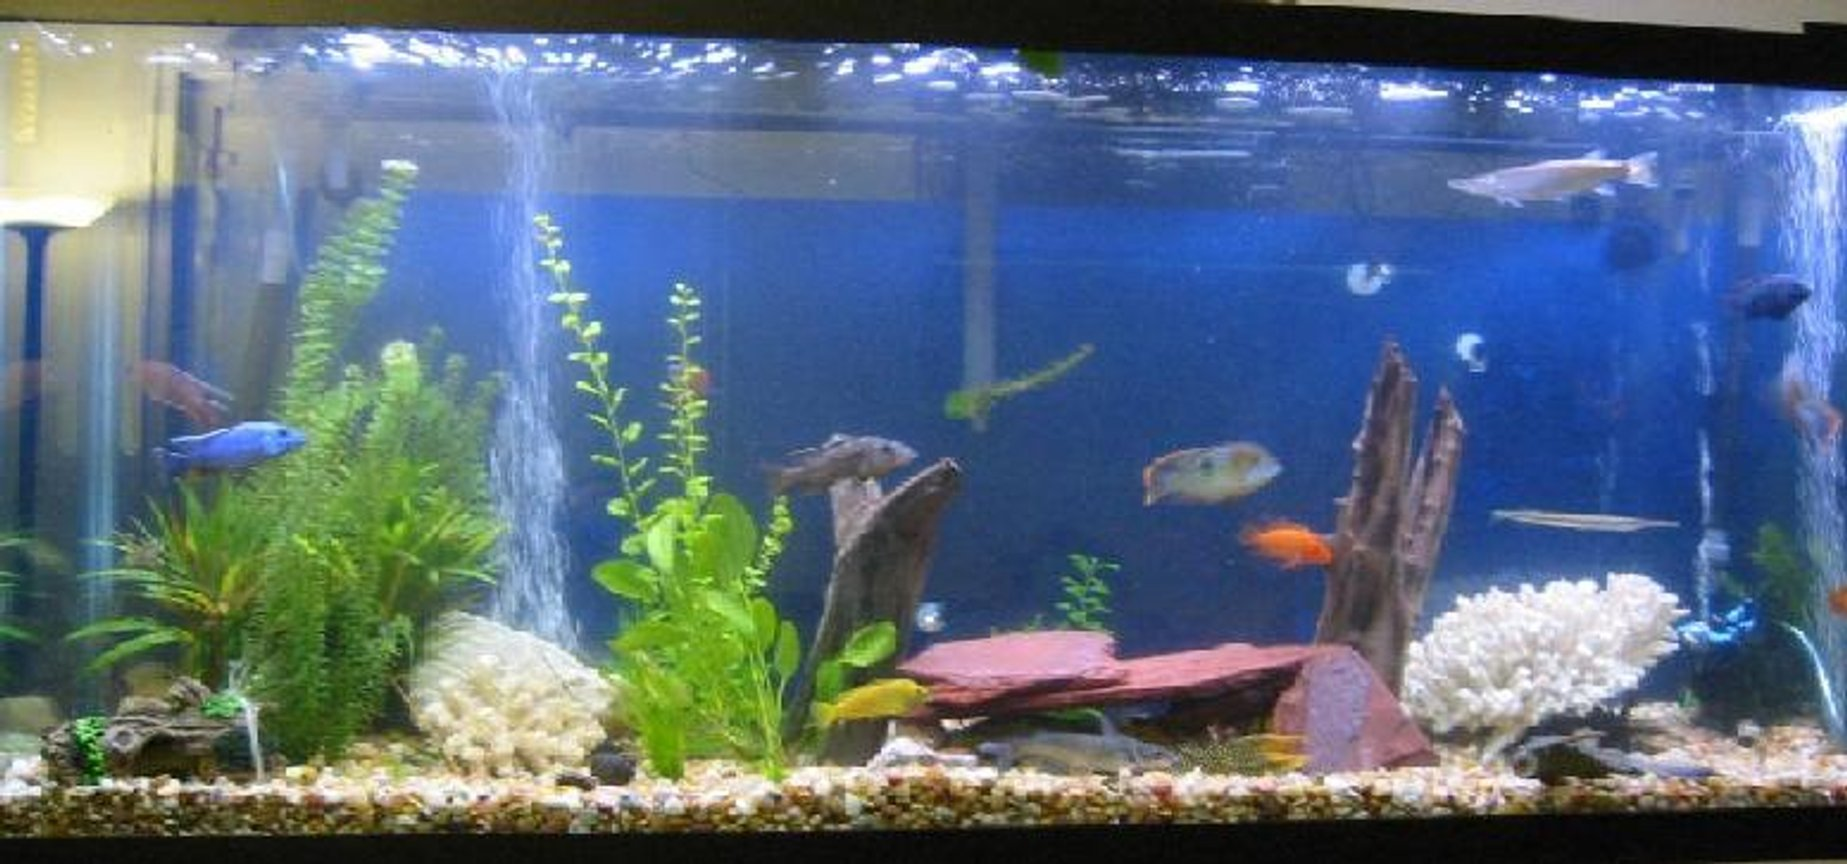 150 gallons freshwater fish tank (mostly fish and non-living decorations) - I have 2 tanks and working on my 3rd. The 1st is a 150 gallon with African cichlids ( among other things) Pictured! The 2nd is a 75 gallon with baby Cichlids The 3rd is going to be a L shaped tank 200 gallons with the front part of the L shape to be rounded. I have never seen a tank like that so if any on has any input on what to do as far as setup or know of a tank let me know.